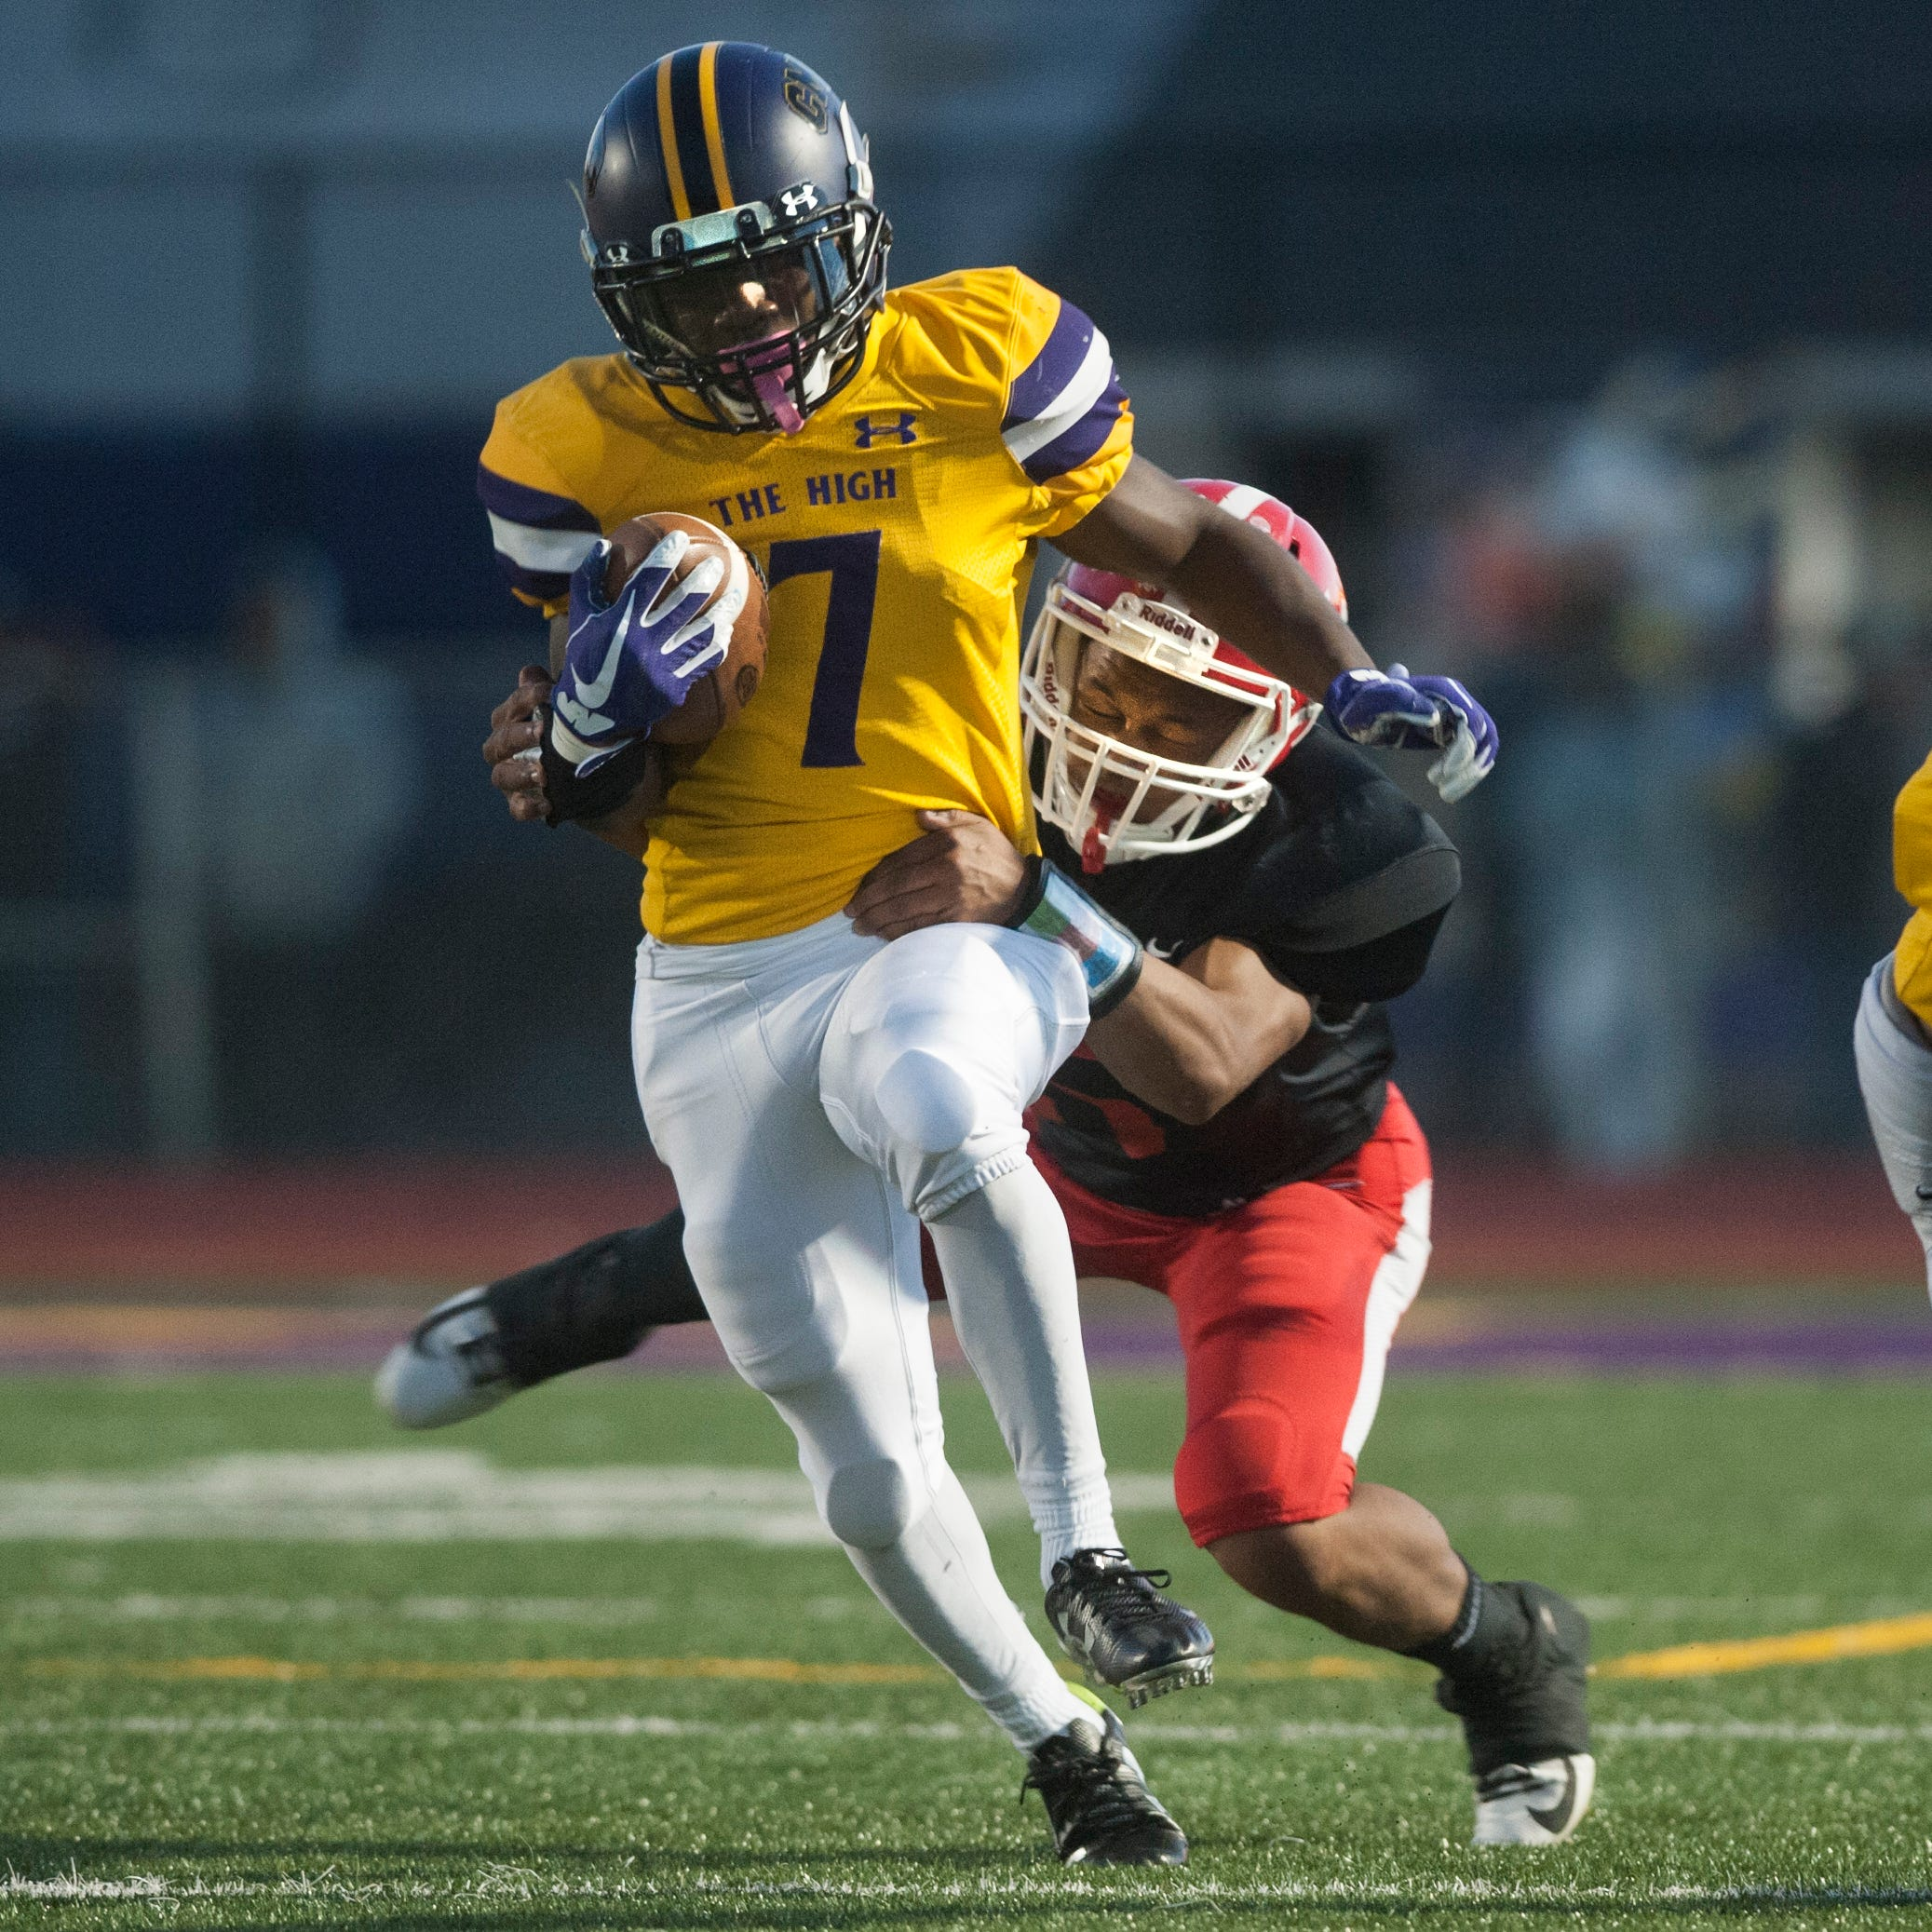 South Jersey Football Mean 15 rankings for Oct. 14